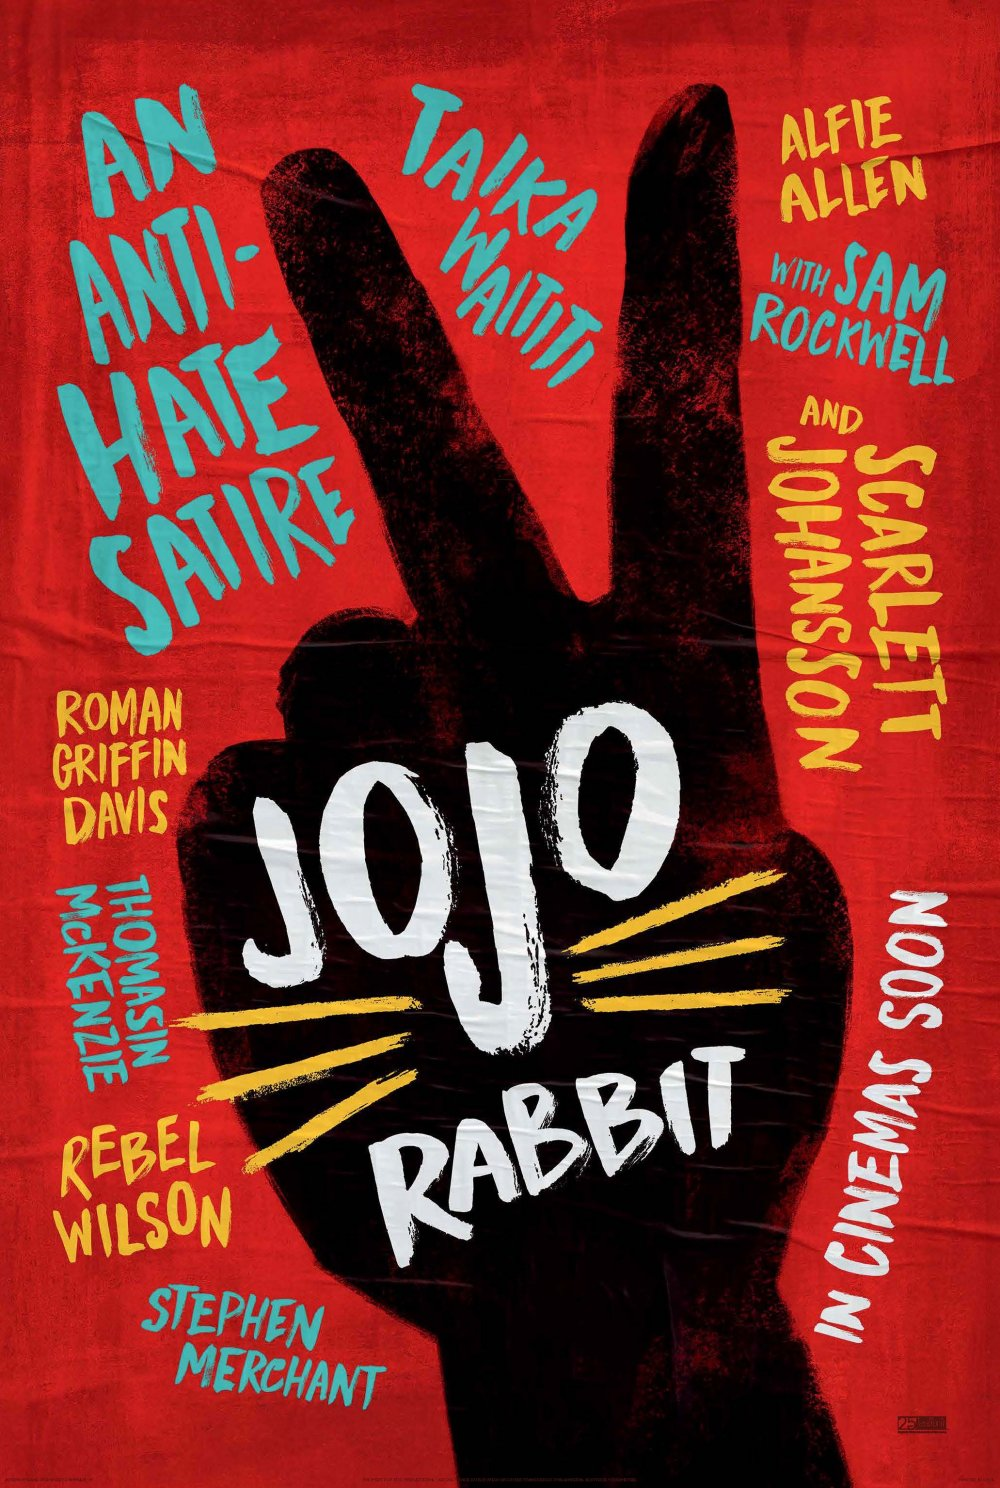 <strong>Jojo Rabbit </strong> Taika Waititi delivers an exuberant and irreverent comedy about challenging dogma and hate